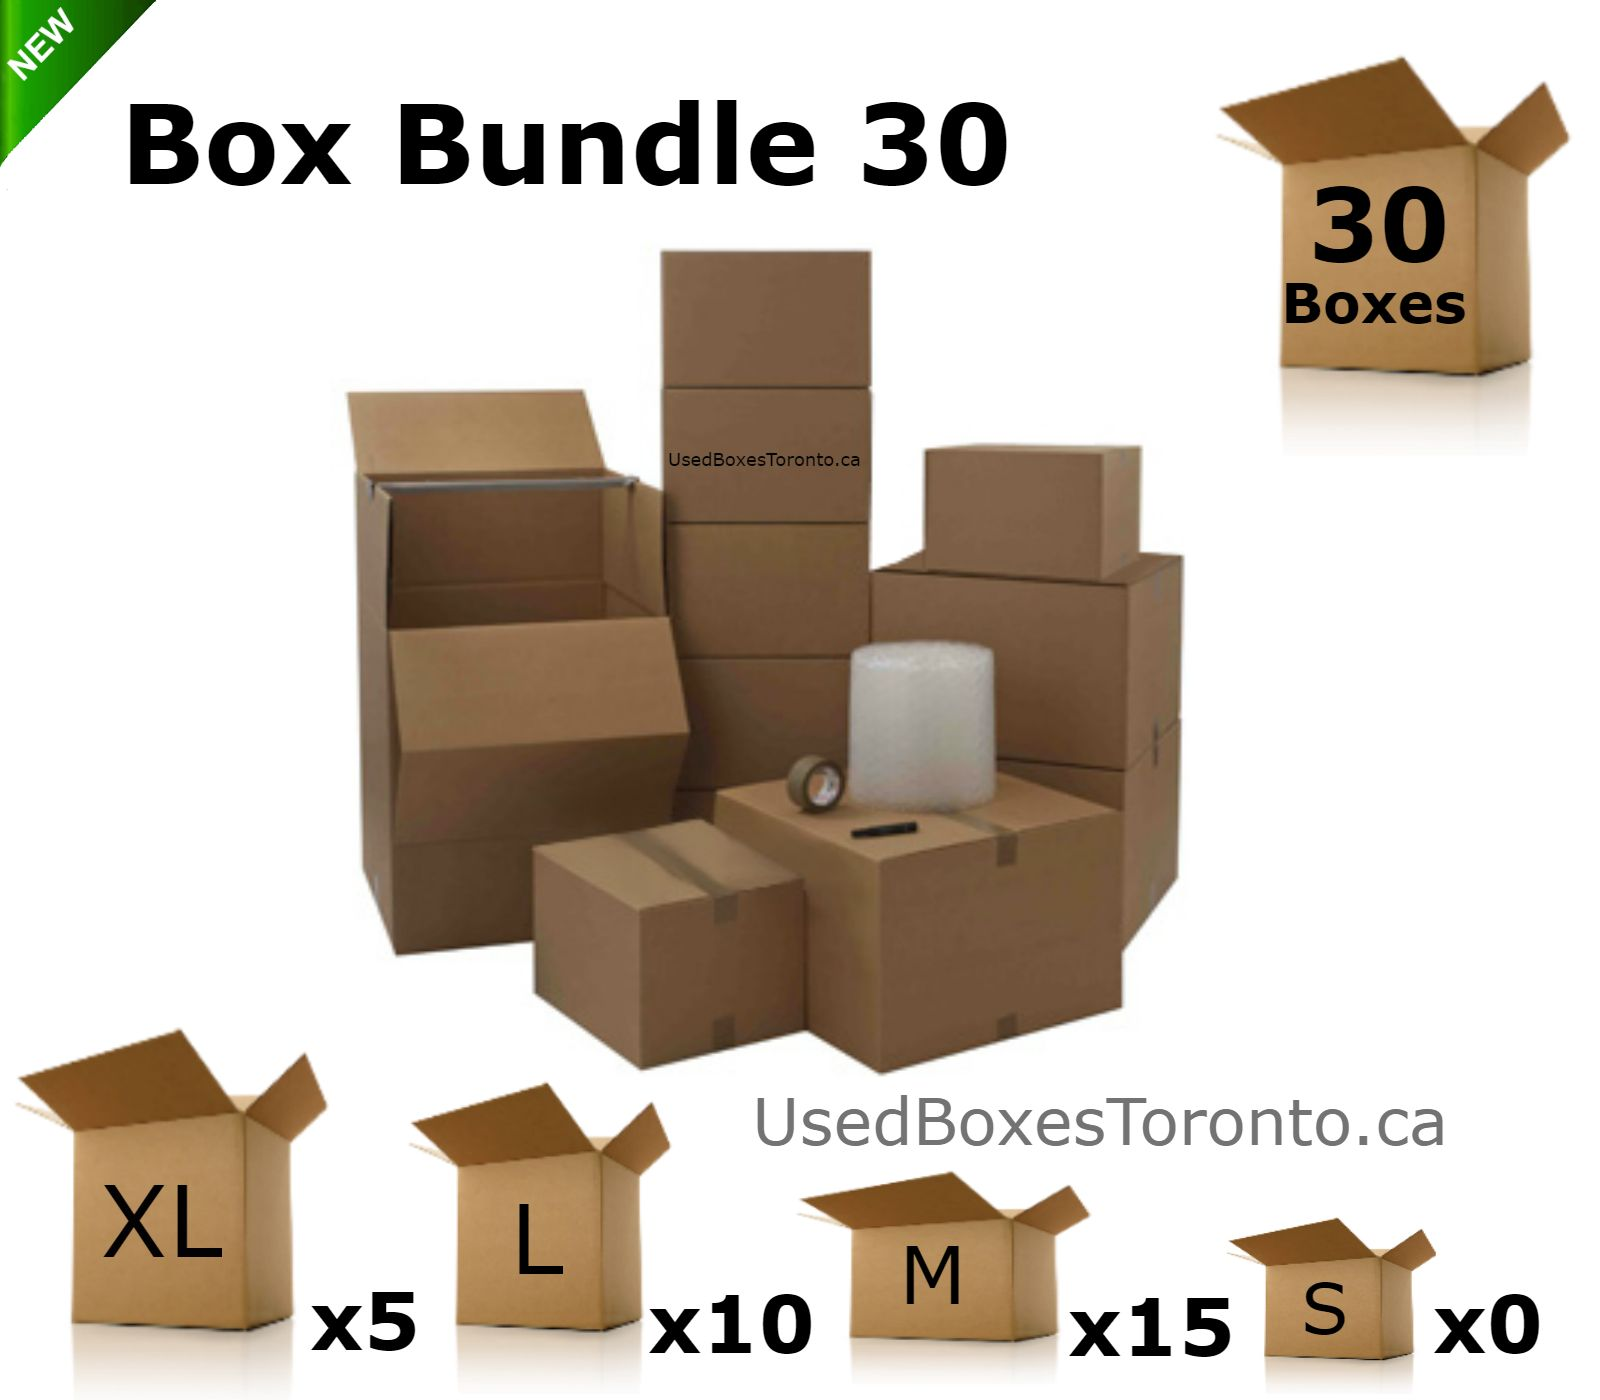 moving box bundle 30 10 small boxes 2 cu ft 10 medium boxes 3